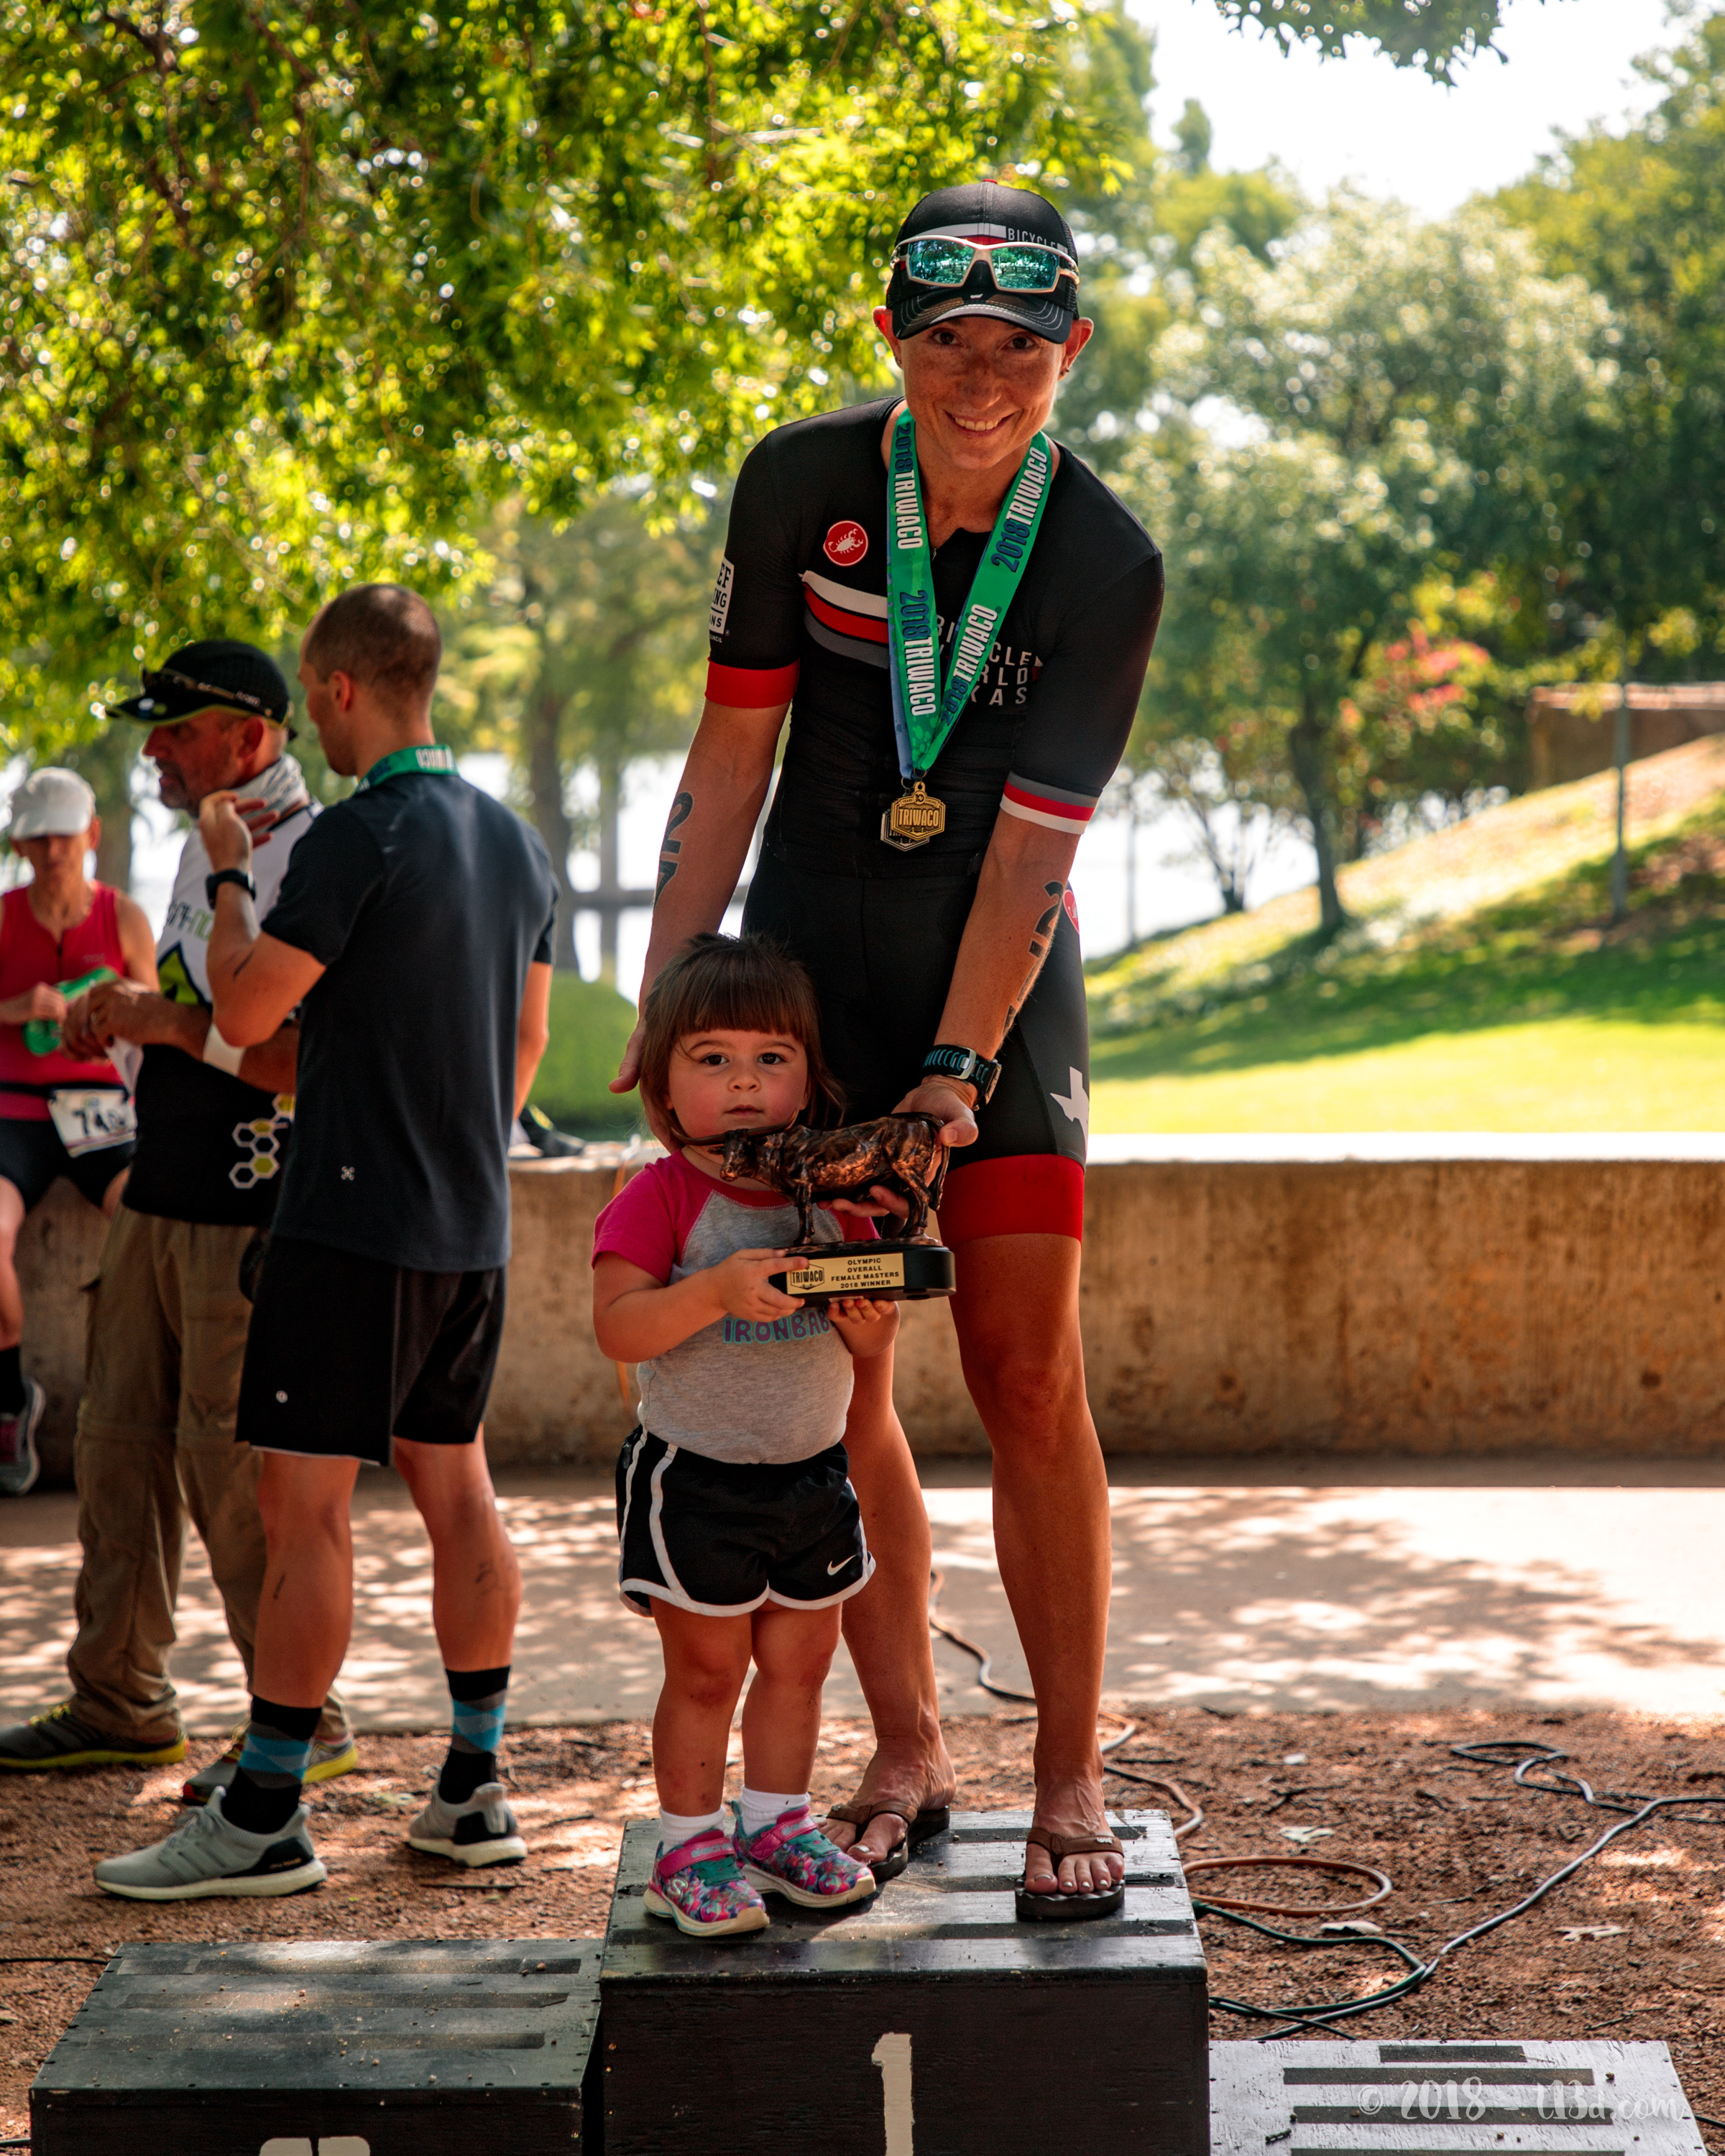 Adaline climbed up on the podium to help me with that heavy trophy. :) Photographer extraordinaire, Travis Swicegood, captured the perfect shot.